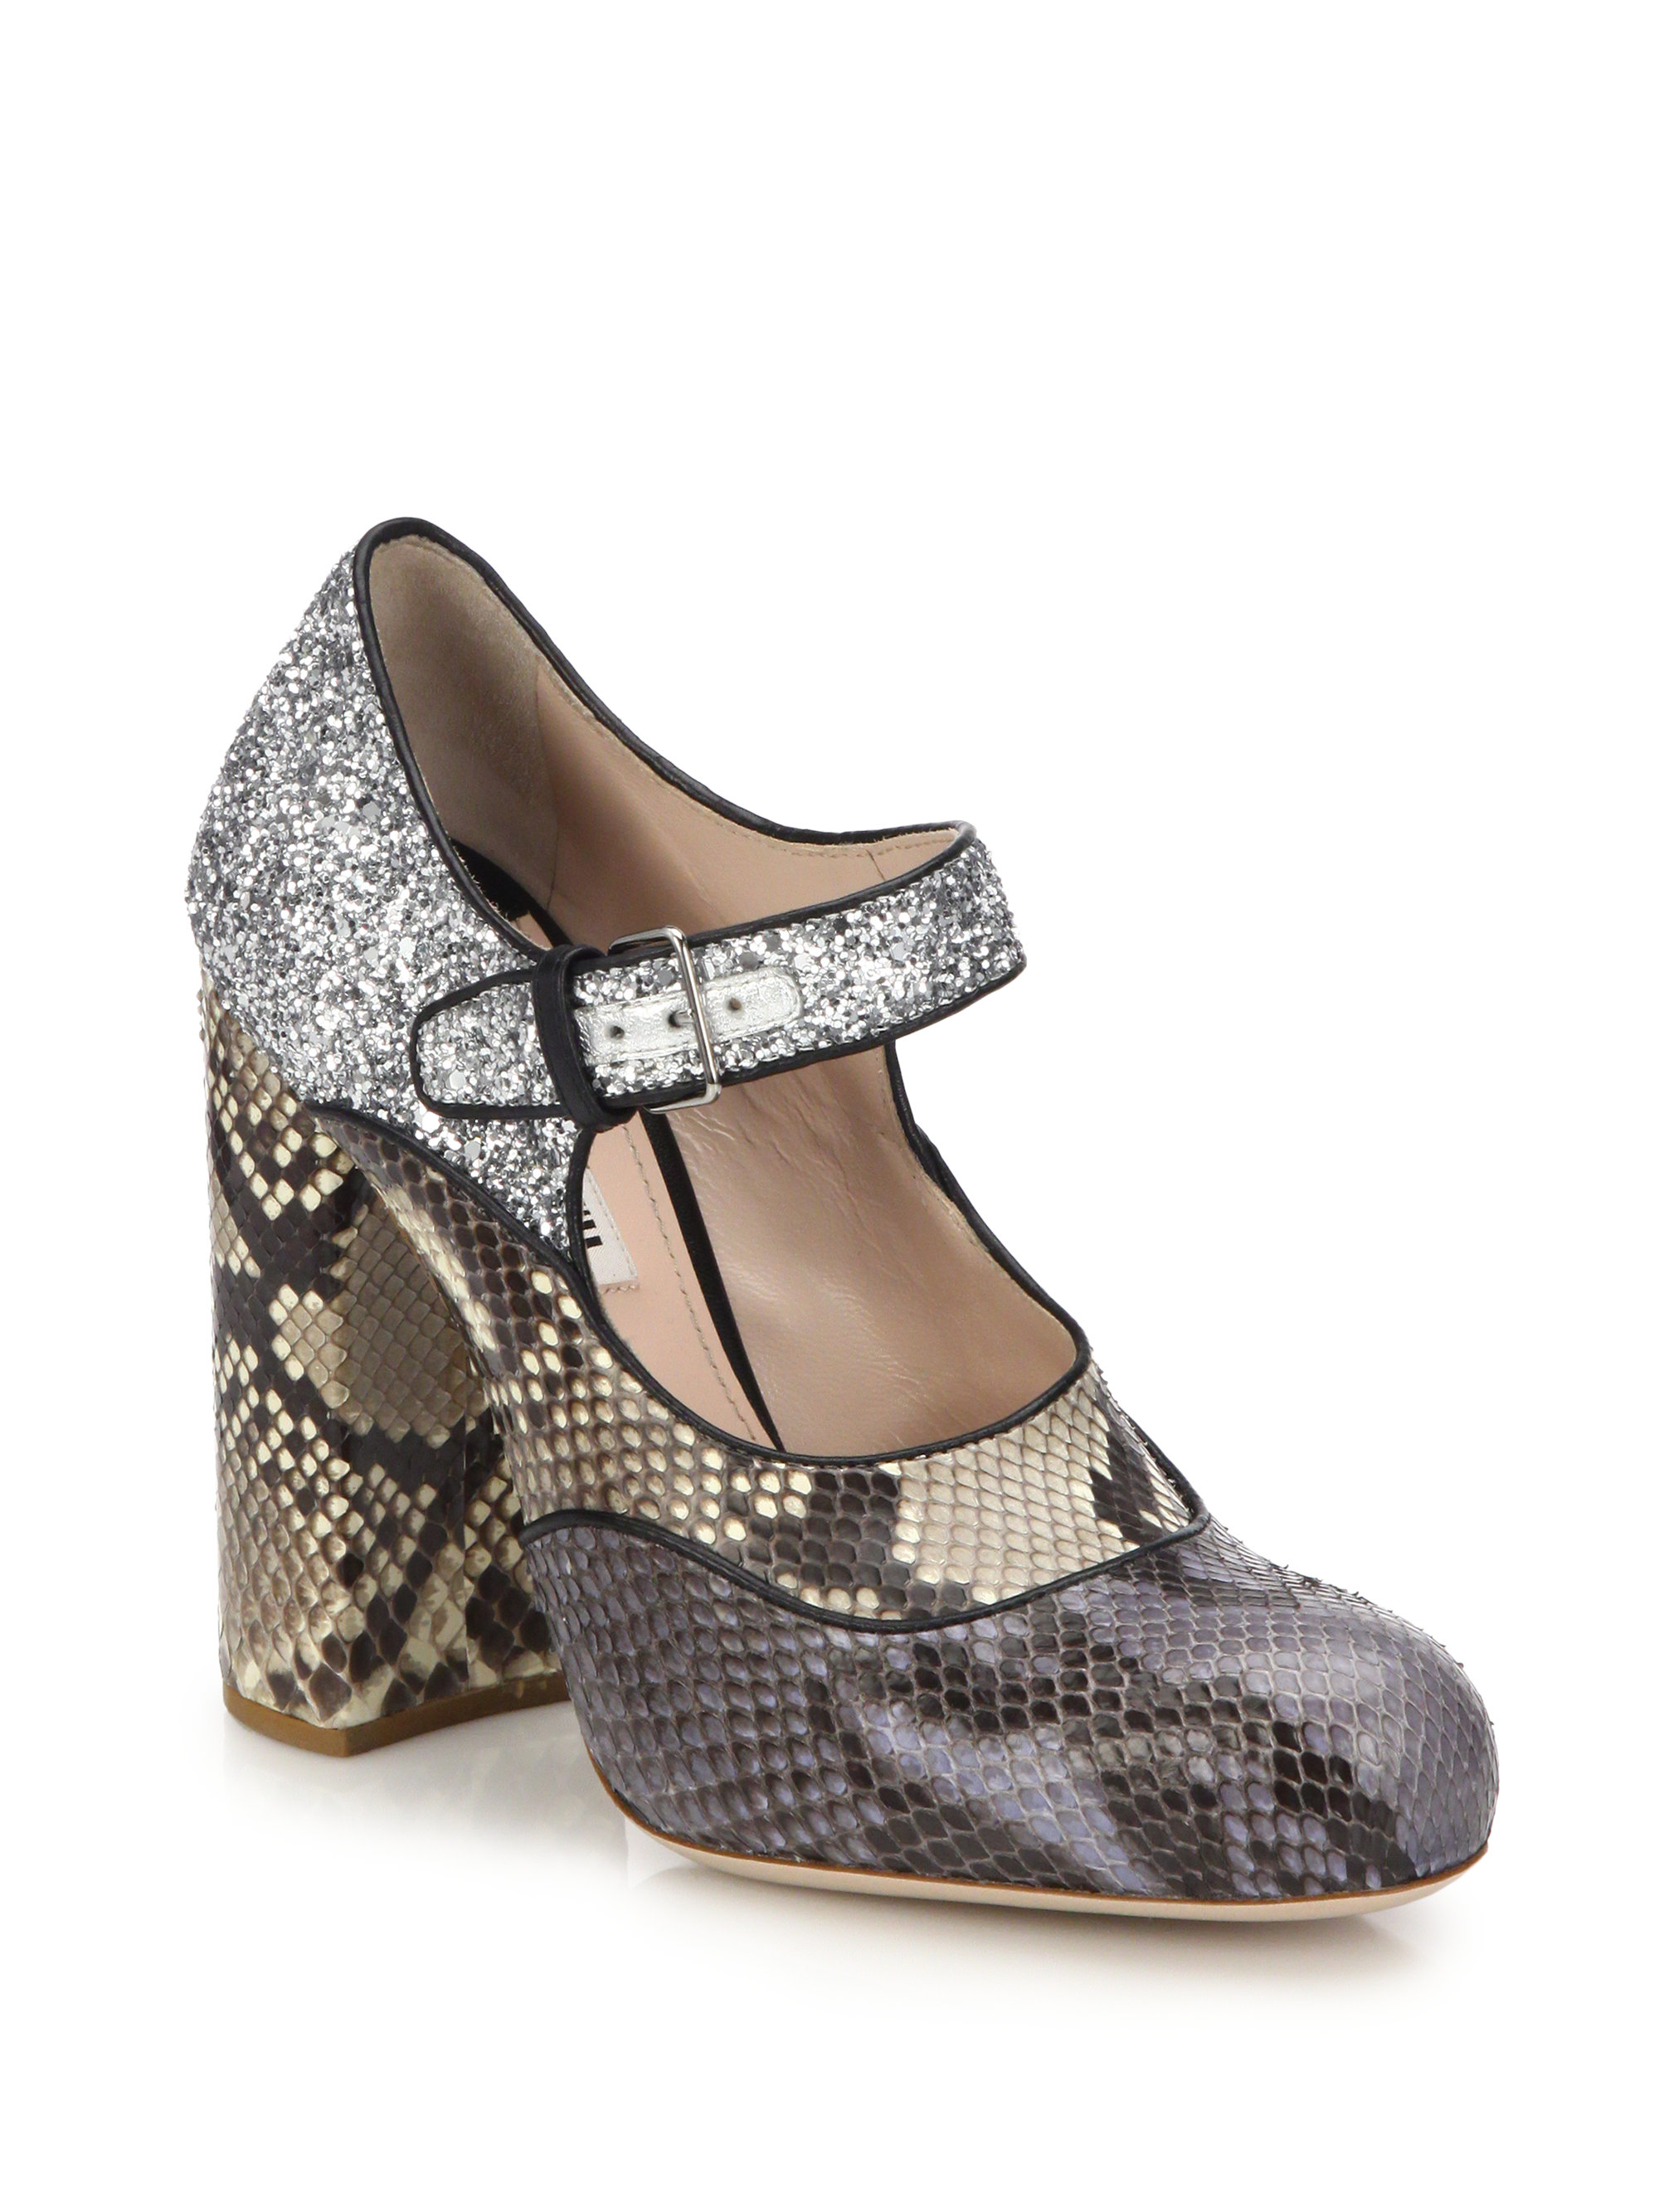 bb875d2e1c5 Lyst - Miu Miu Python   Glitter Mary Jane Pumps in Natural